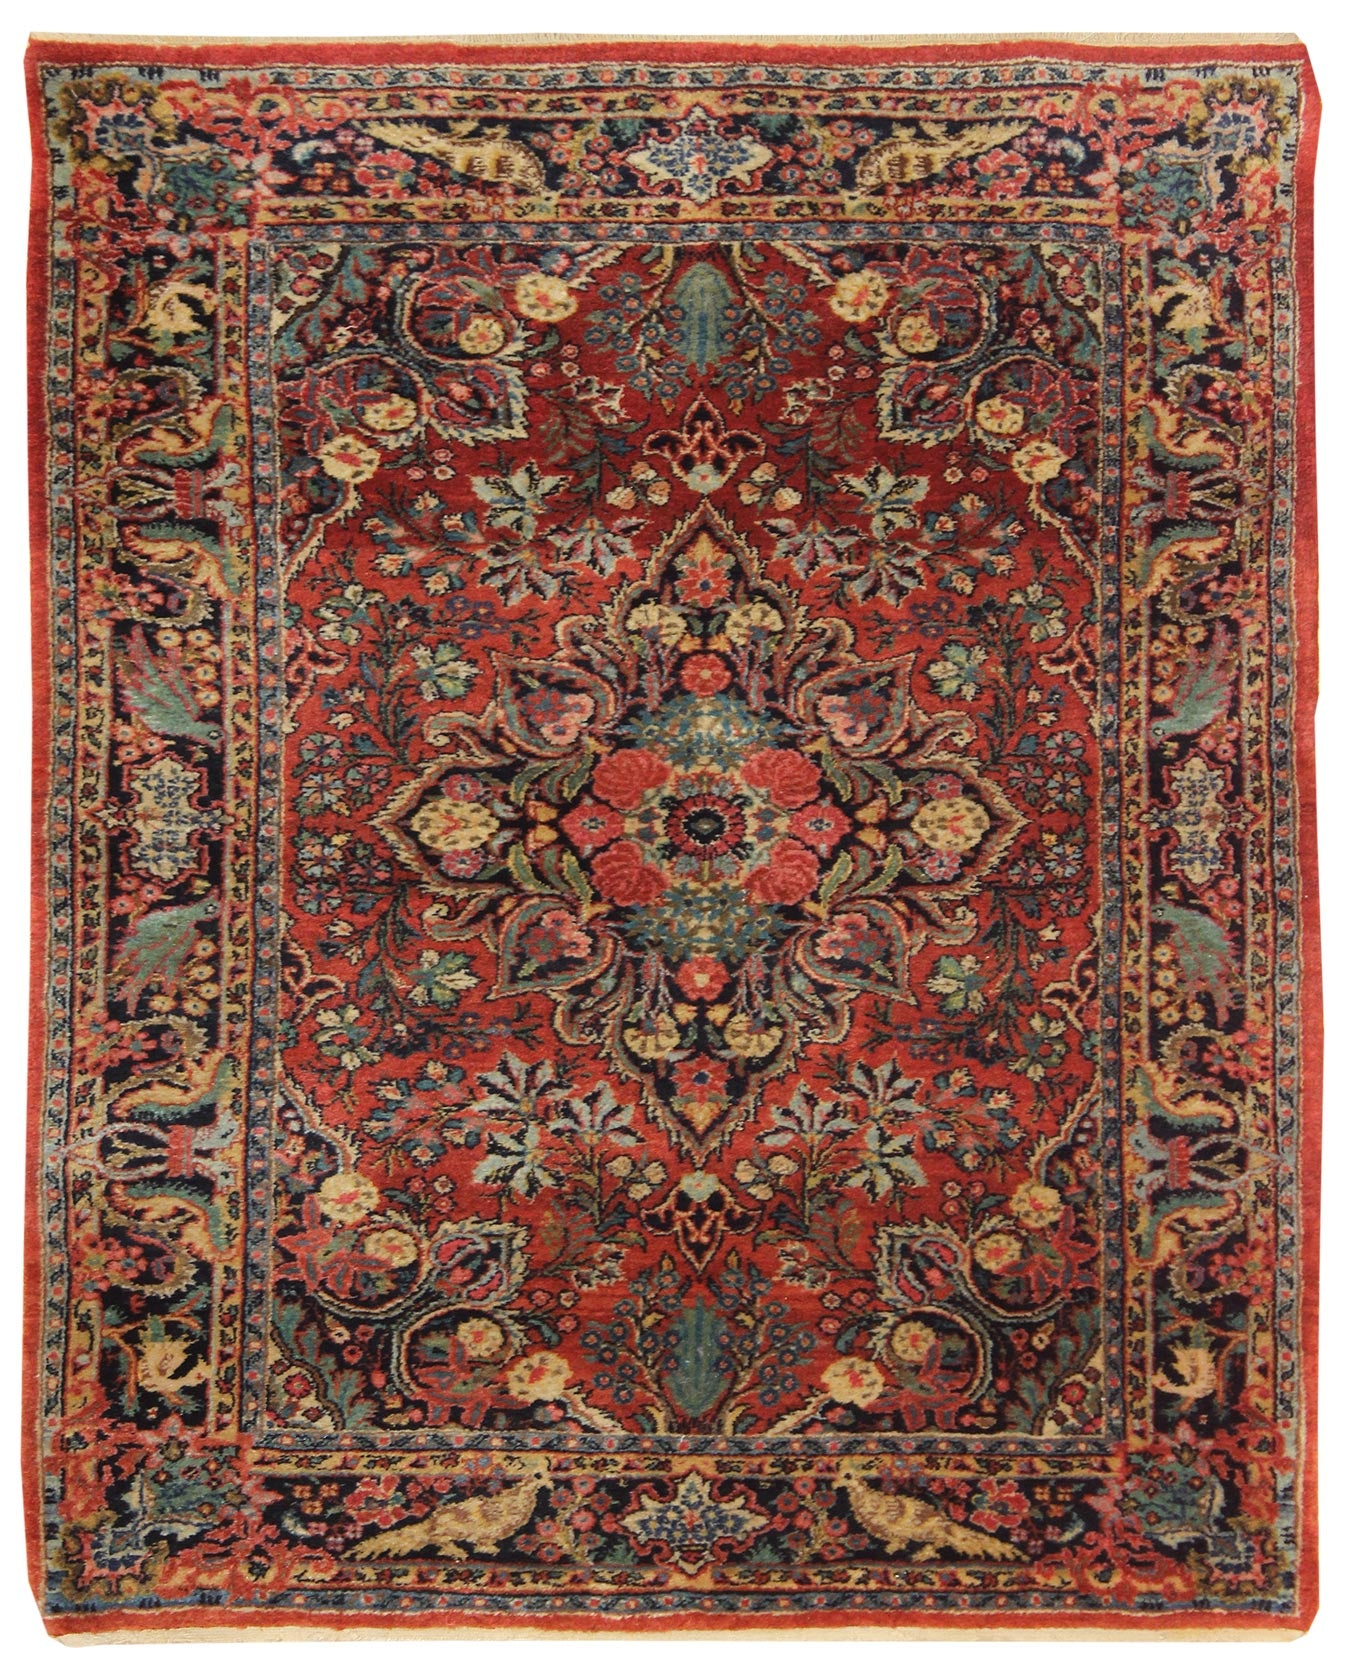 Antique Ekbatan Handwoven Traditional Rug